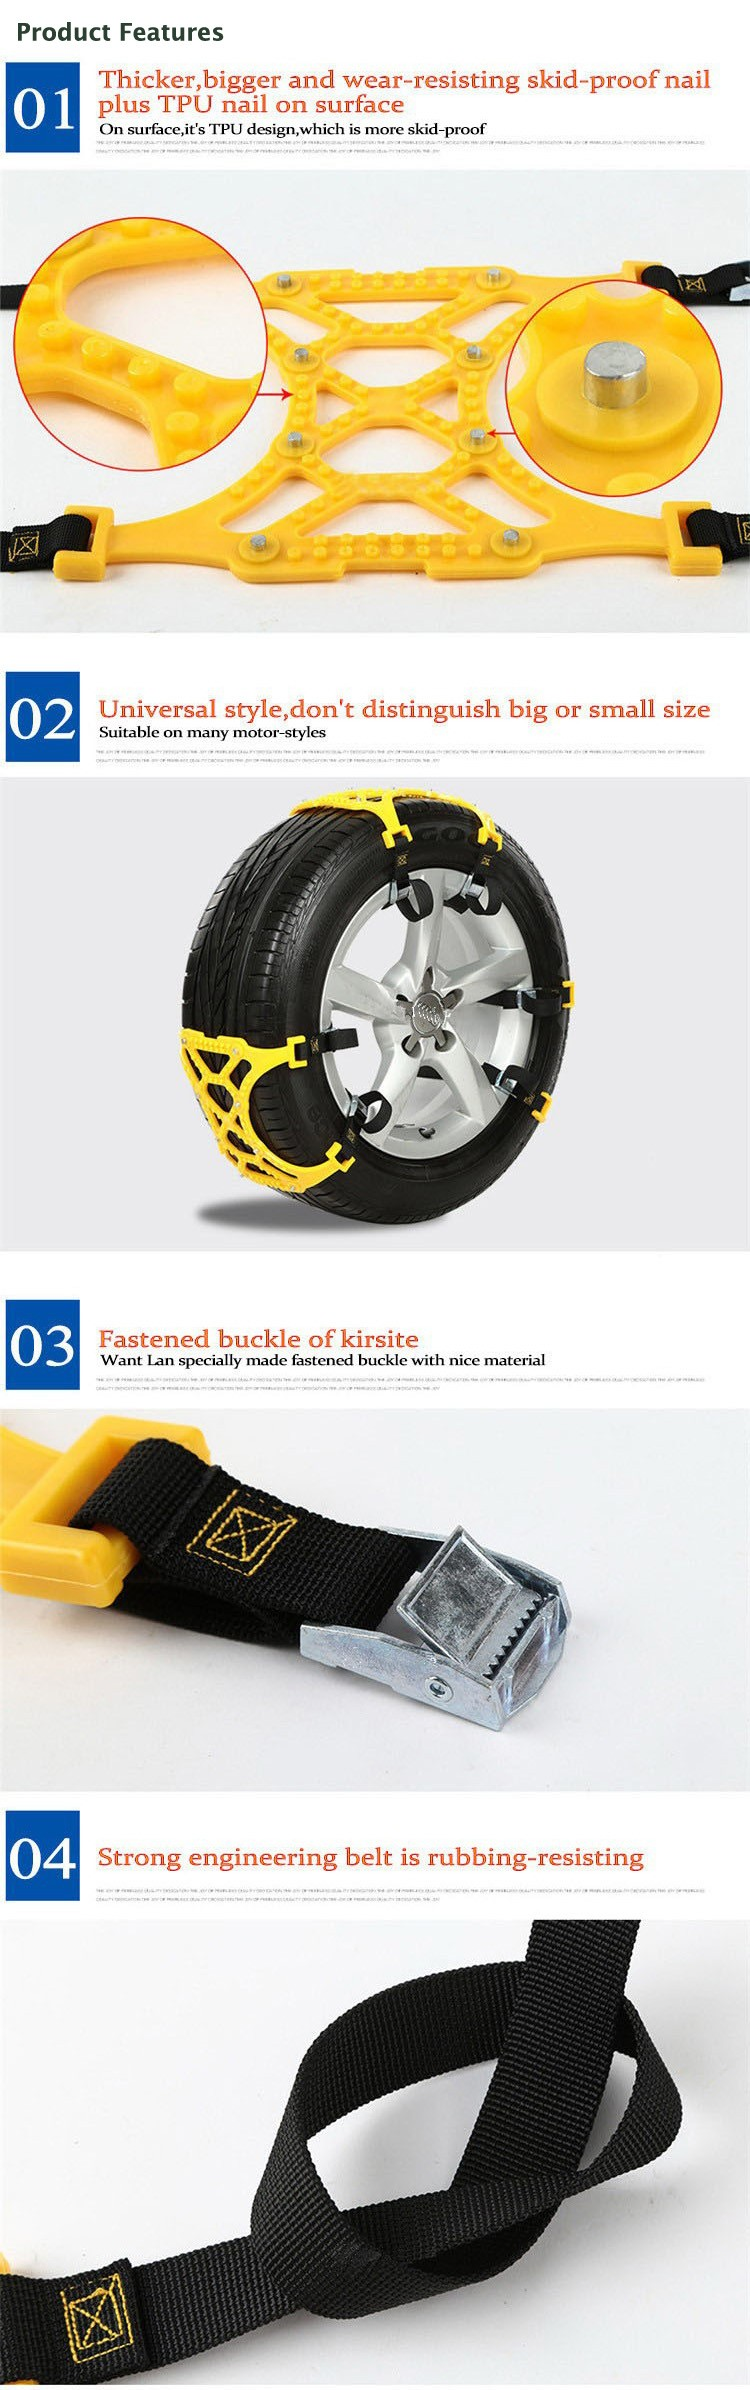 Car Tire Skid Chain Features